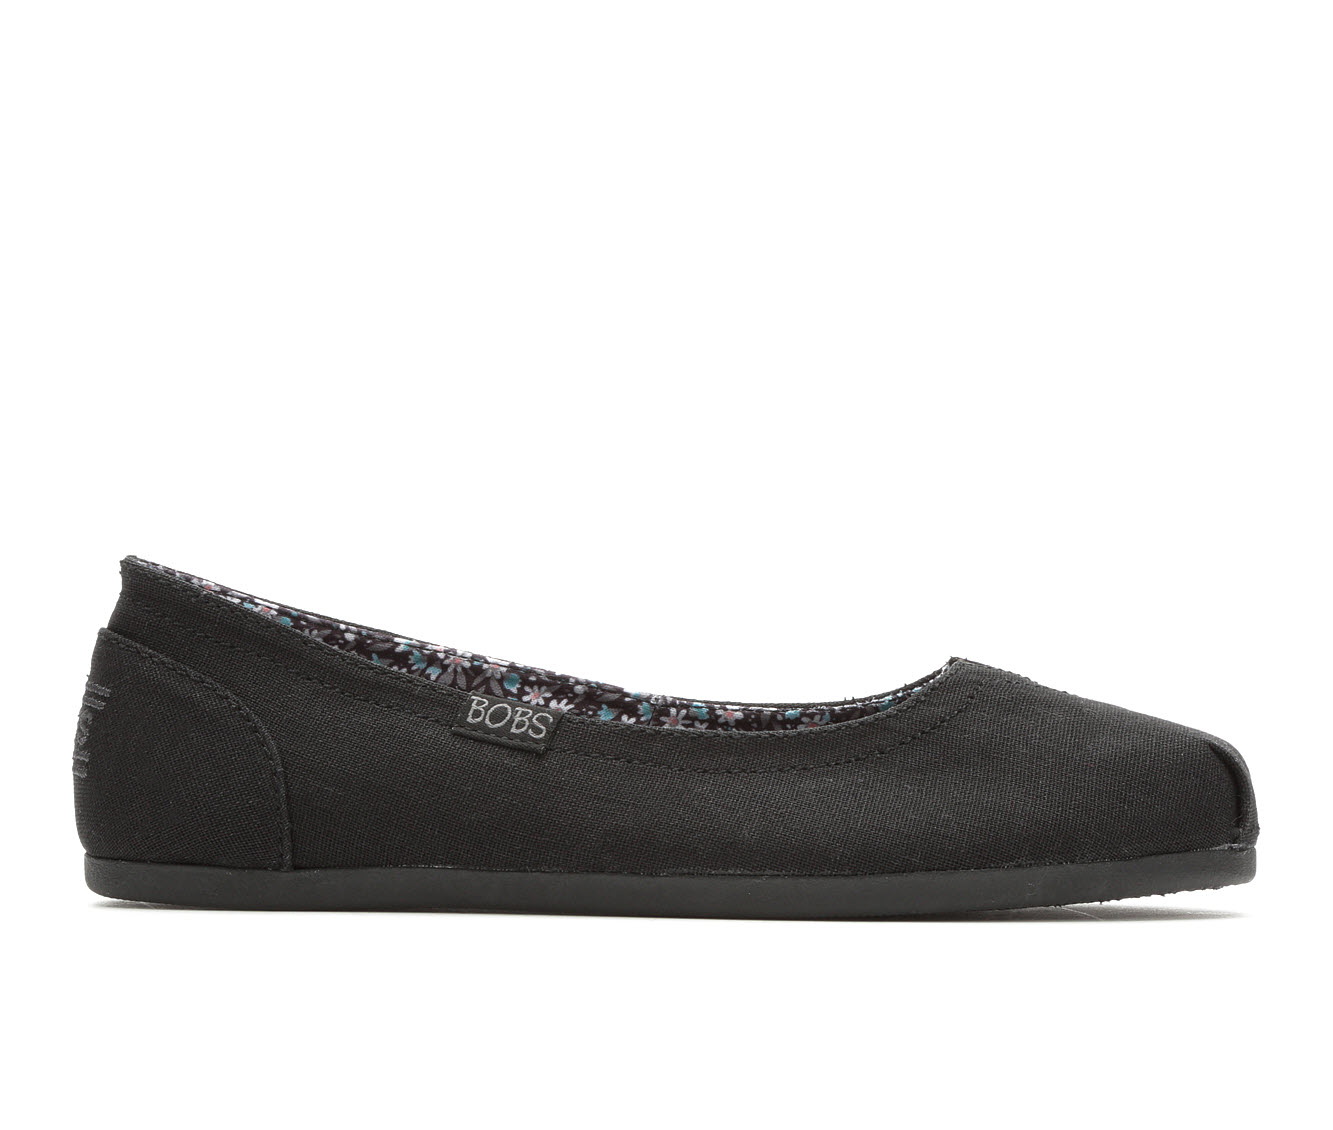 BOBS Turning Point Women's Shoe (Black Canvas)